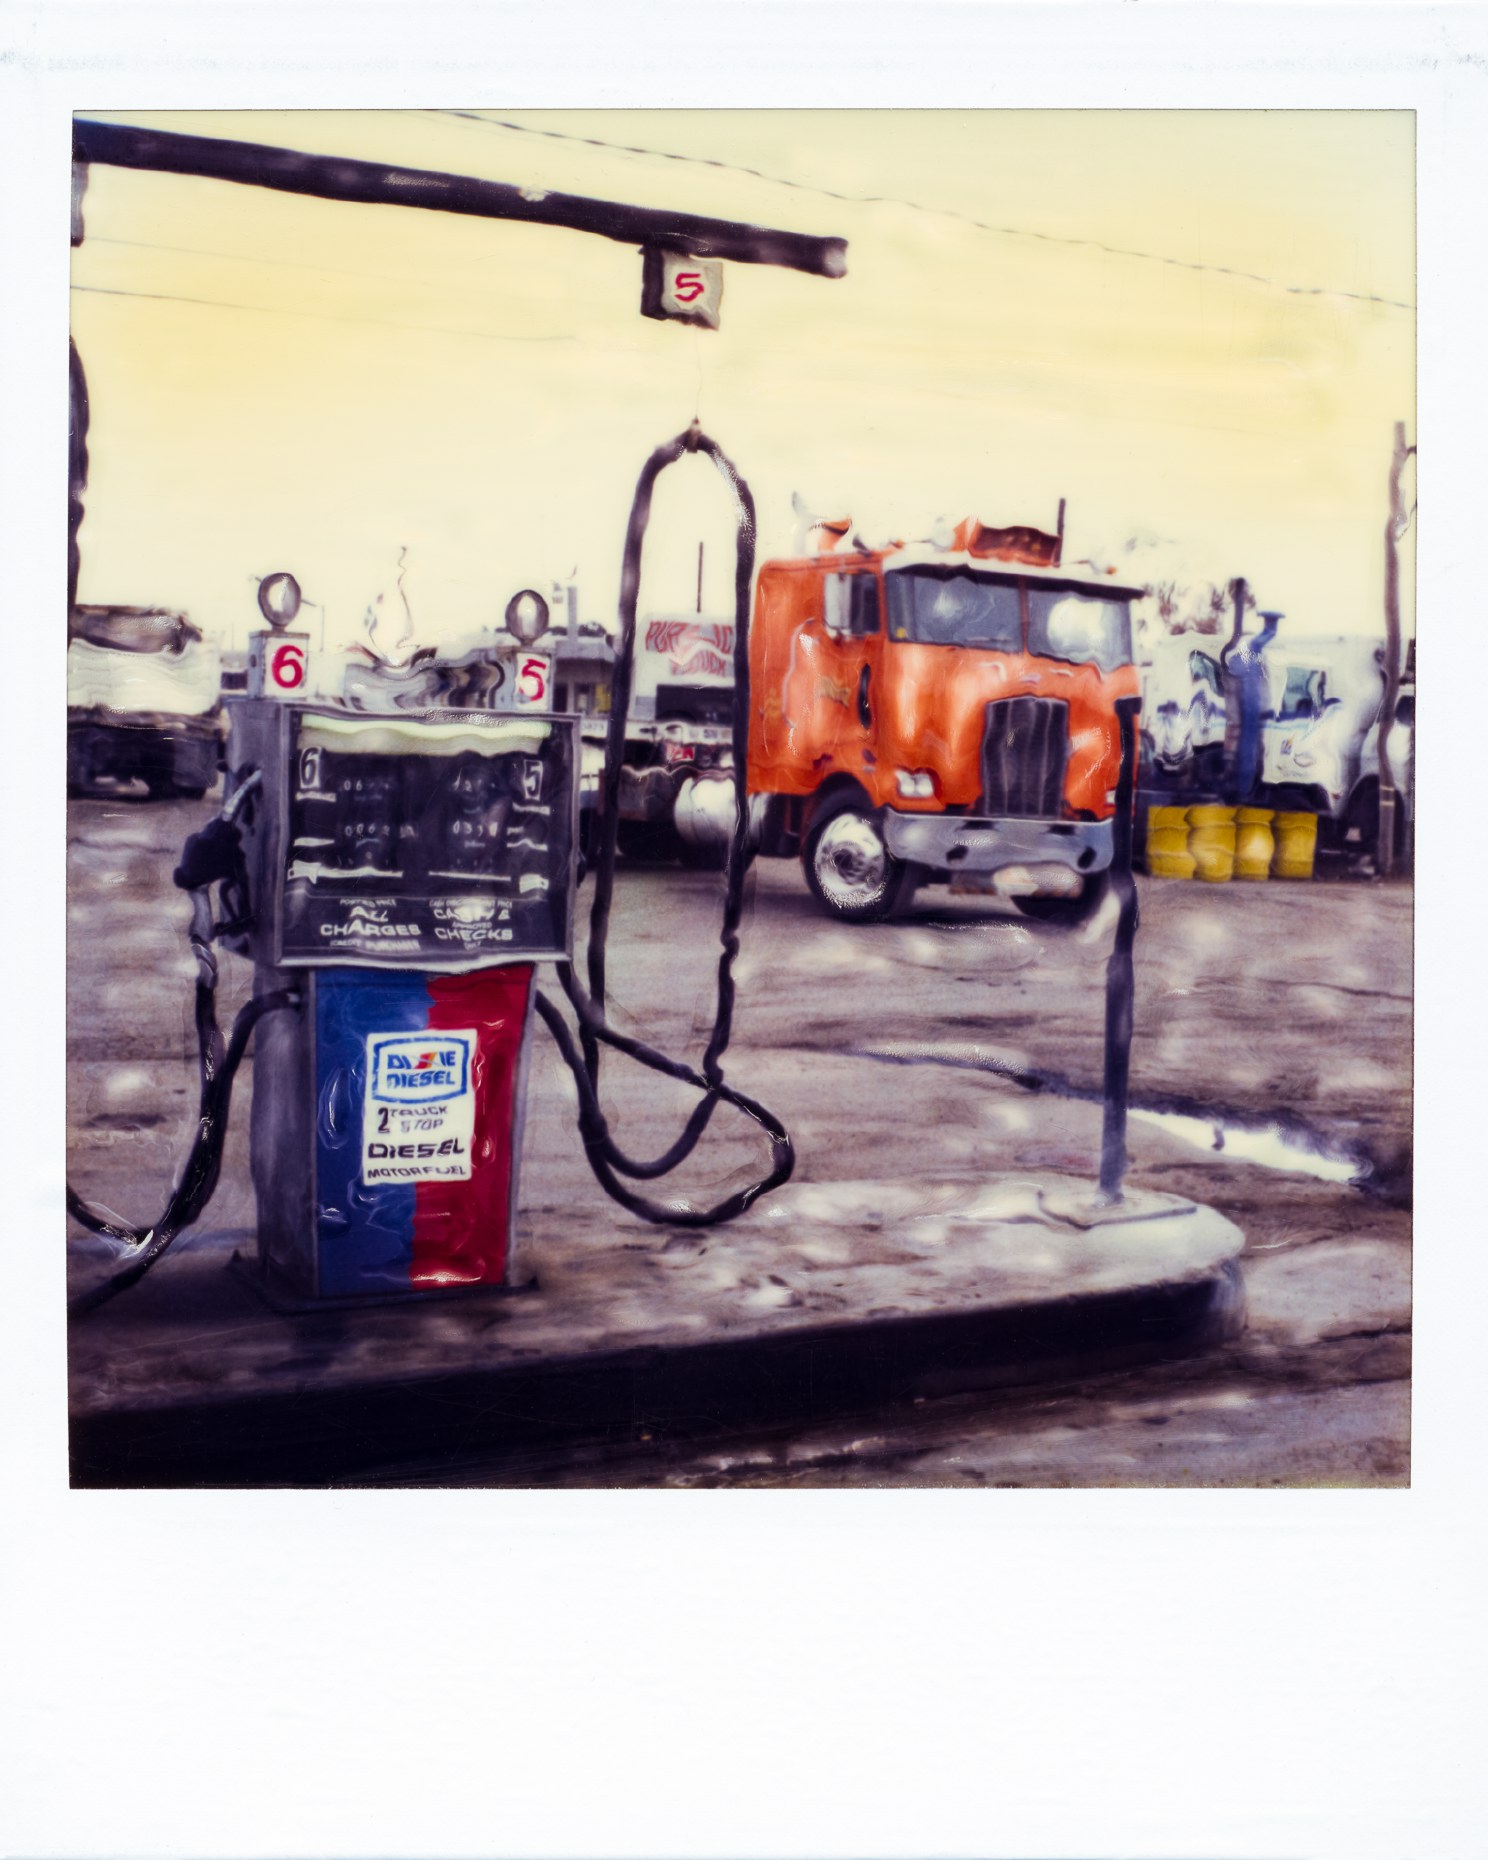 49_RKELLY_sx-70_Semi_2430.JPG